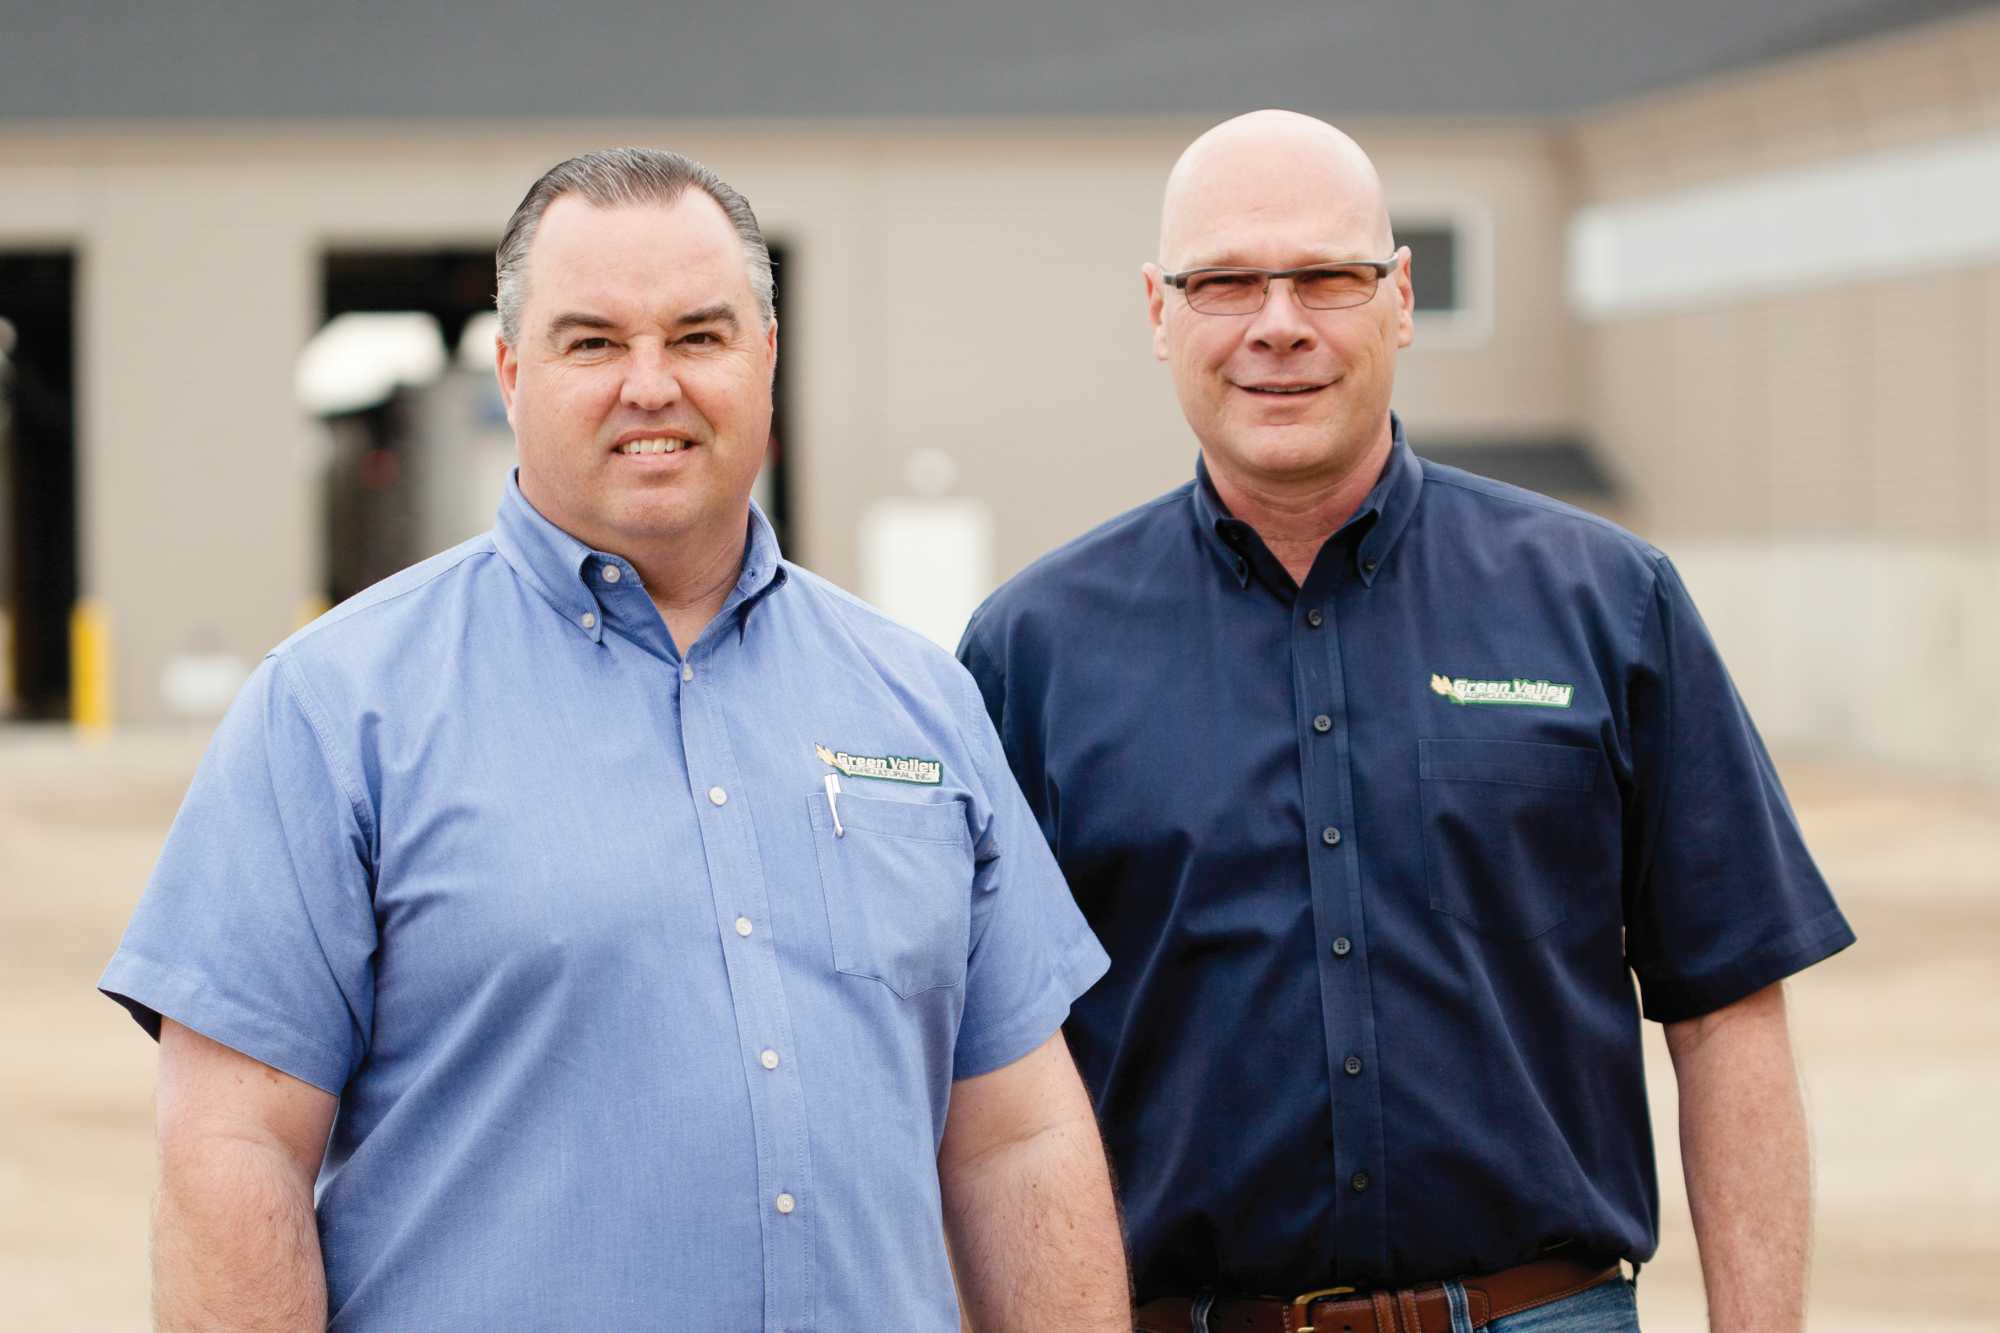 Green Valley Co-owners Mark Edema and John Christian